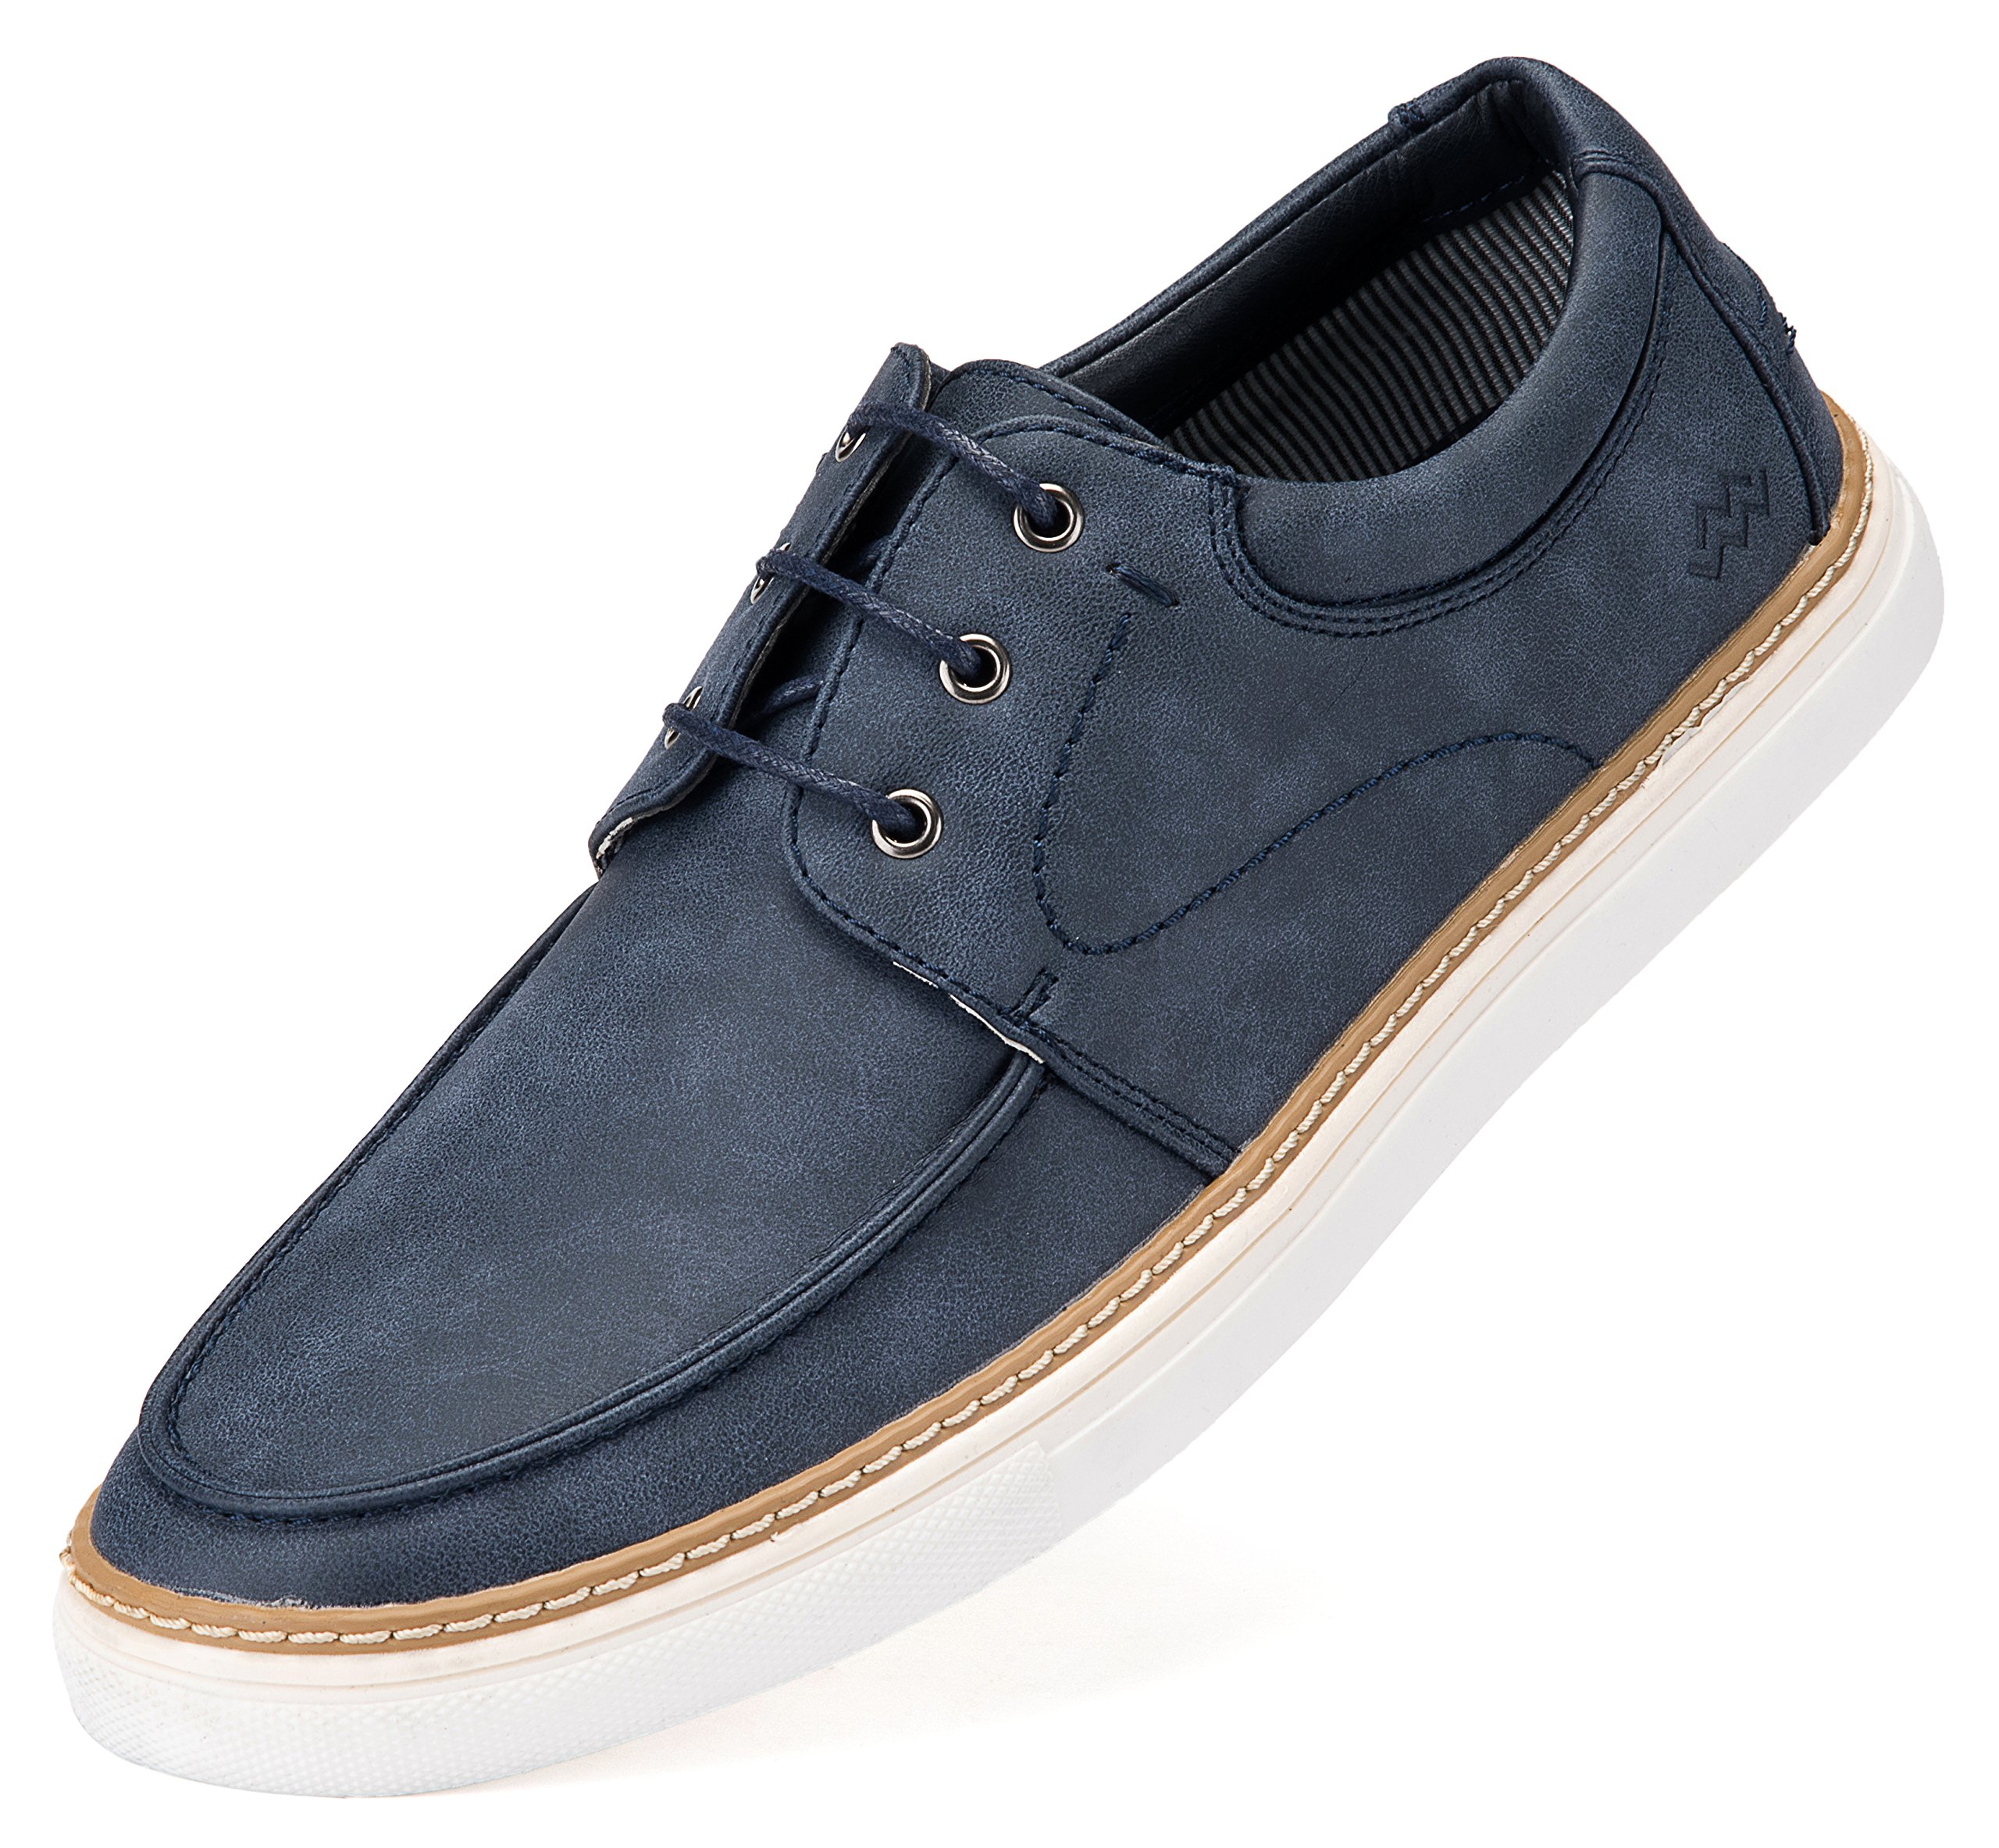 Mio Marino Casual Shoes for Men - Mens Dress Sneakers - Comfortable Fashion Sneakers - Royal Navy - US 12 | UK 11.5 | EU 45